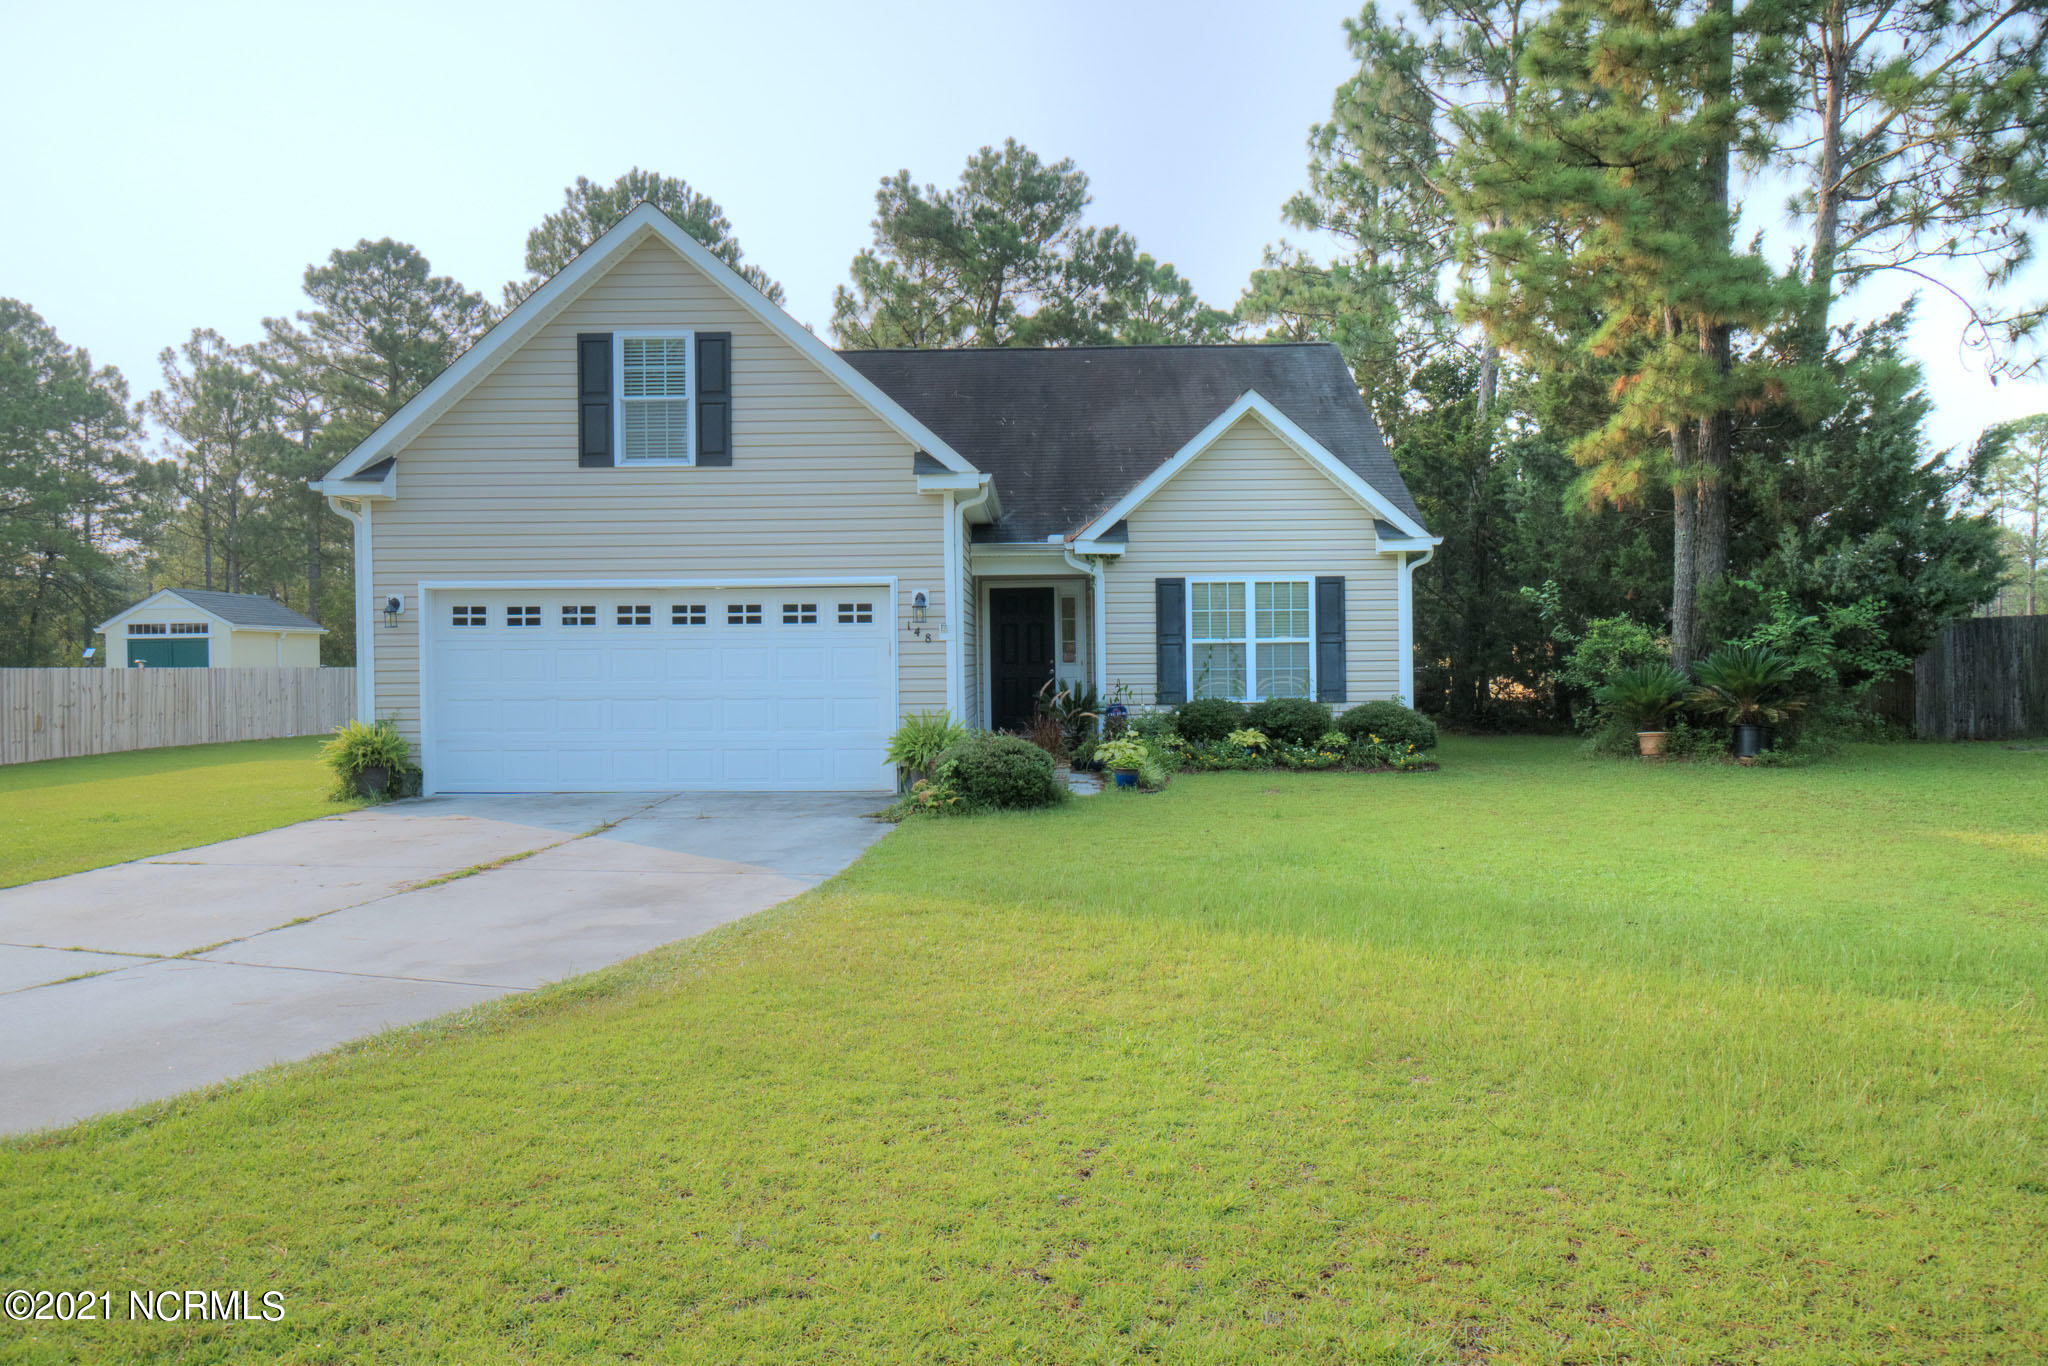 Welcome to this amazing home with 3 bedrooms AND a BONUS room! The home features open floor plan concept, conveniently located in Hubert, minutes from the back gate of Camp Lejeune and close to the local beaches. Spacious 2 car garage. Large backyard ideal for entertaining family and friends. Master suite is on the first floor of the home.